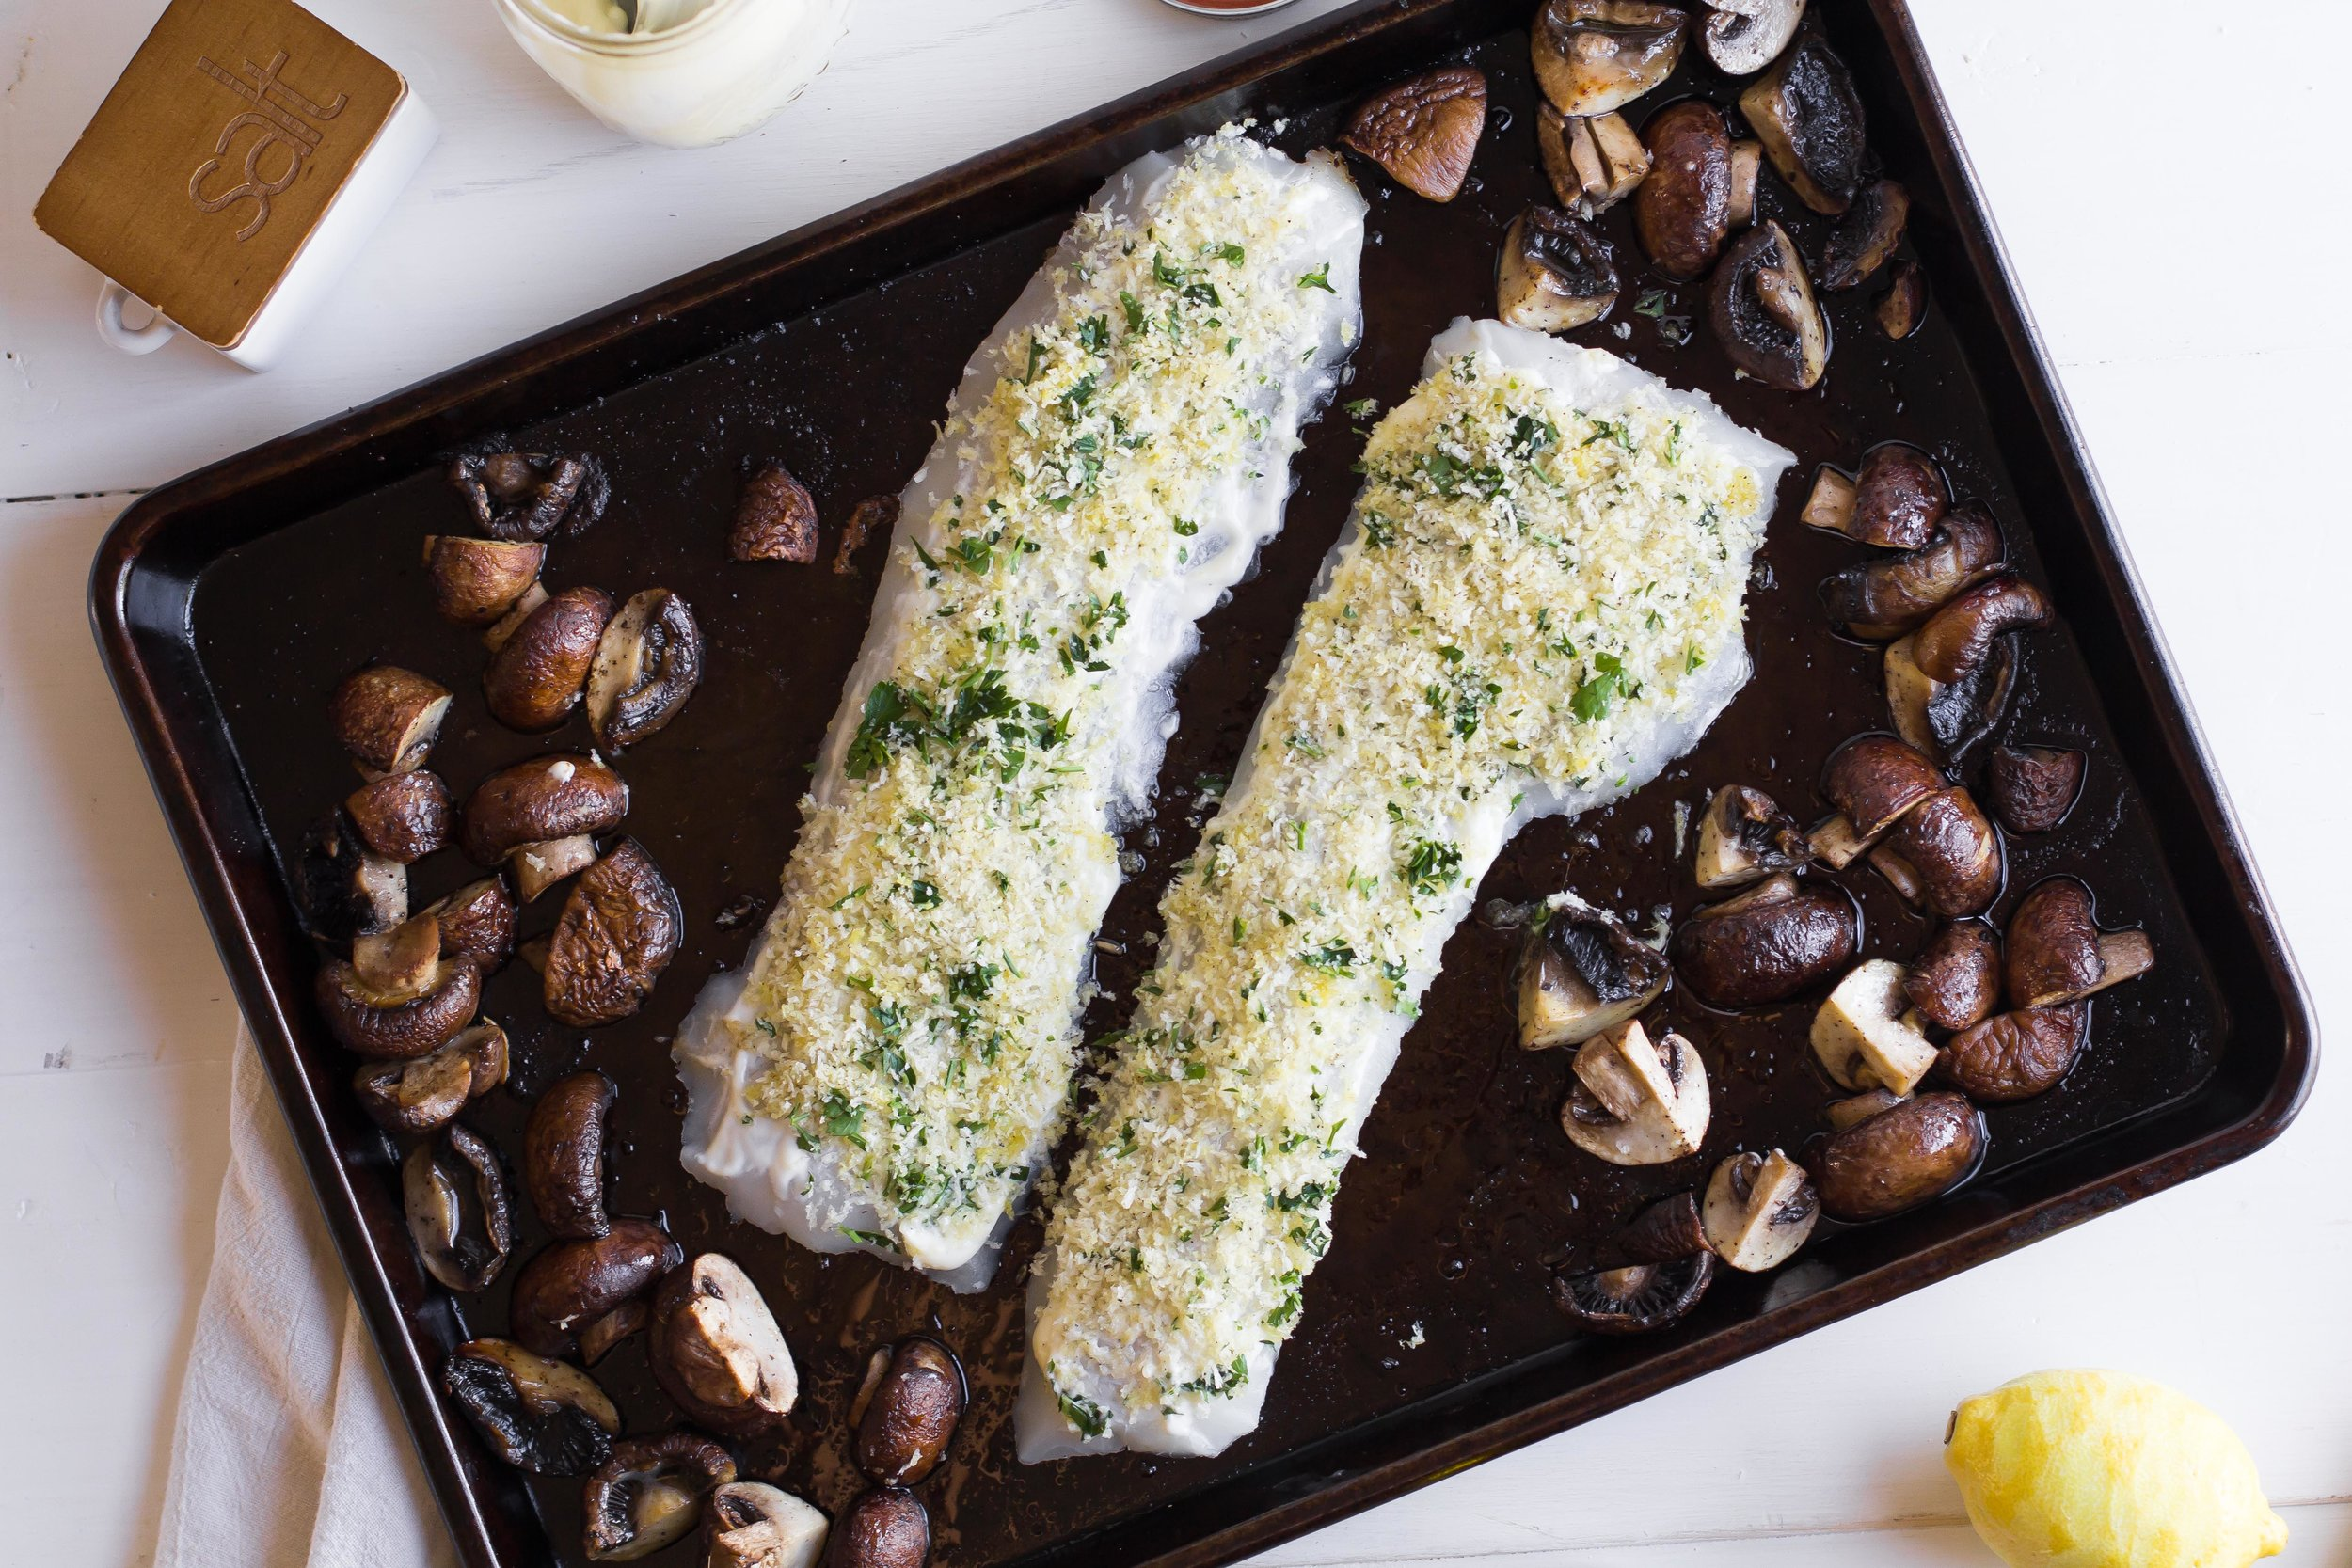 Panko-Crusted Pacific Cod with Roasted Mushrooms + Sauteed Spinach | Sarah J. Hauser